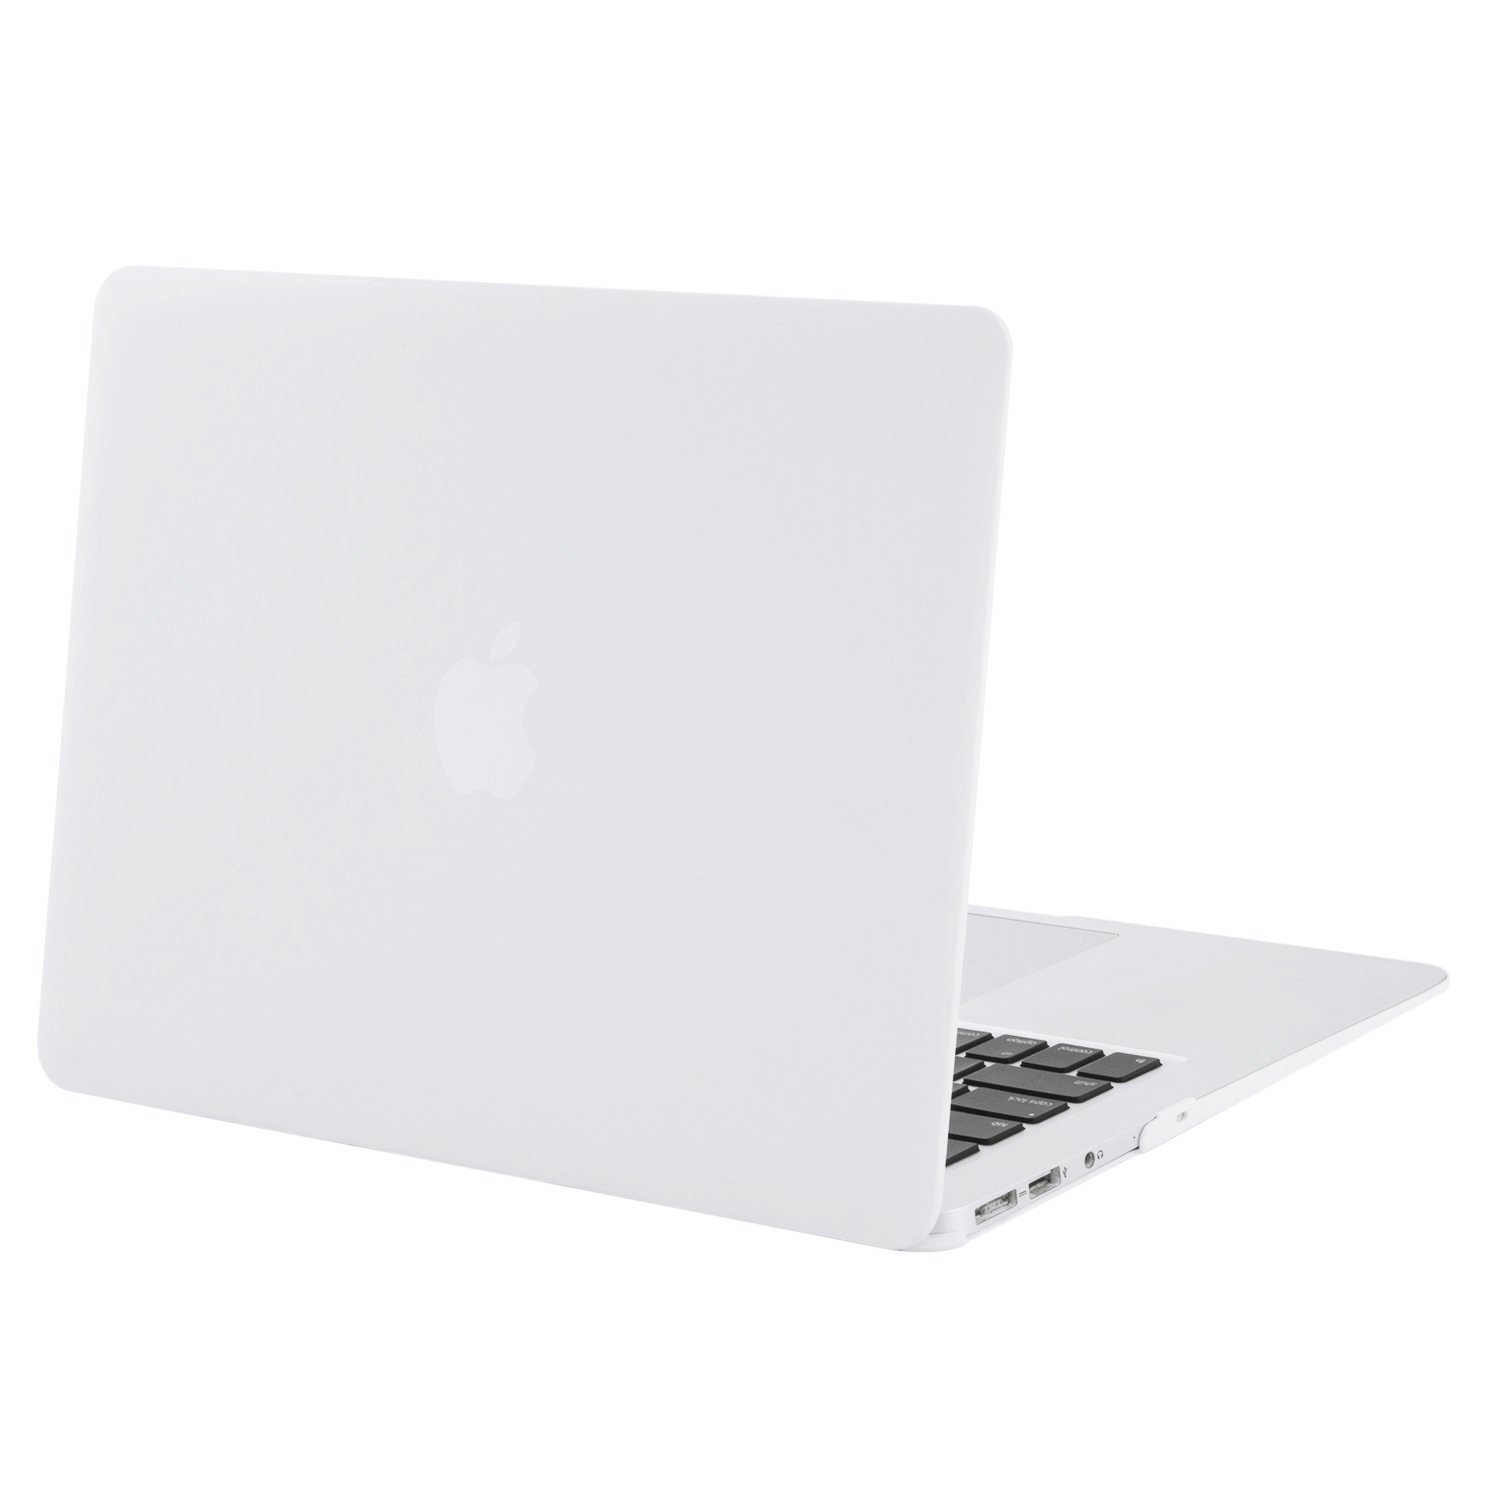 "Codegen Apple 13"" 13 inc Macbook Pro Retina A1502 A1425 Beyaz Kılıf Kapak CMPR-133W"